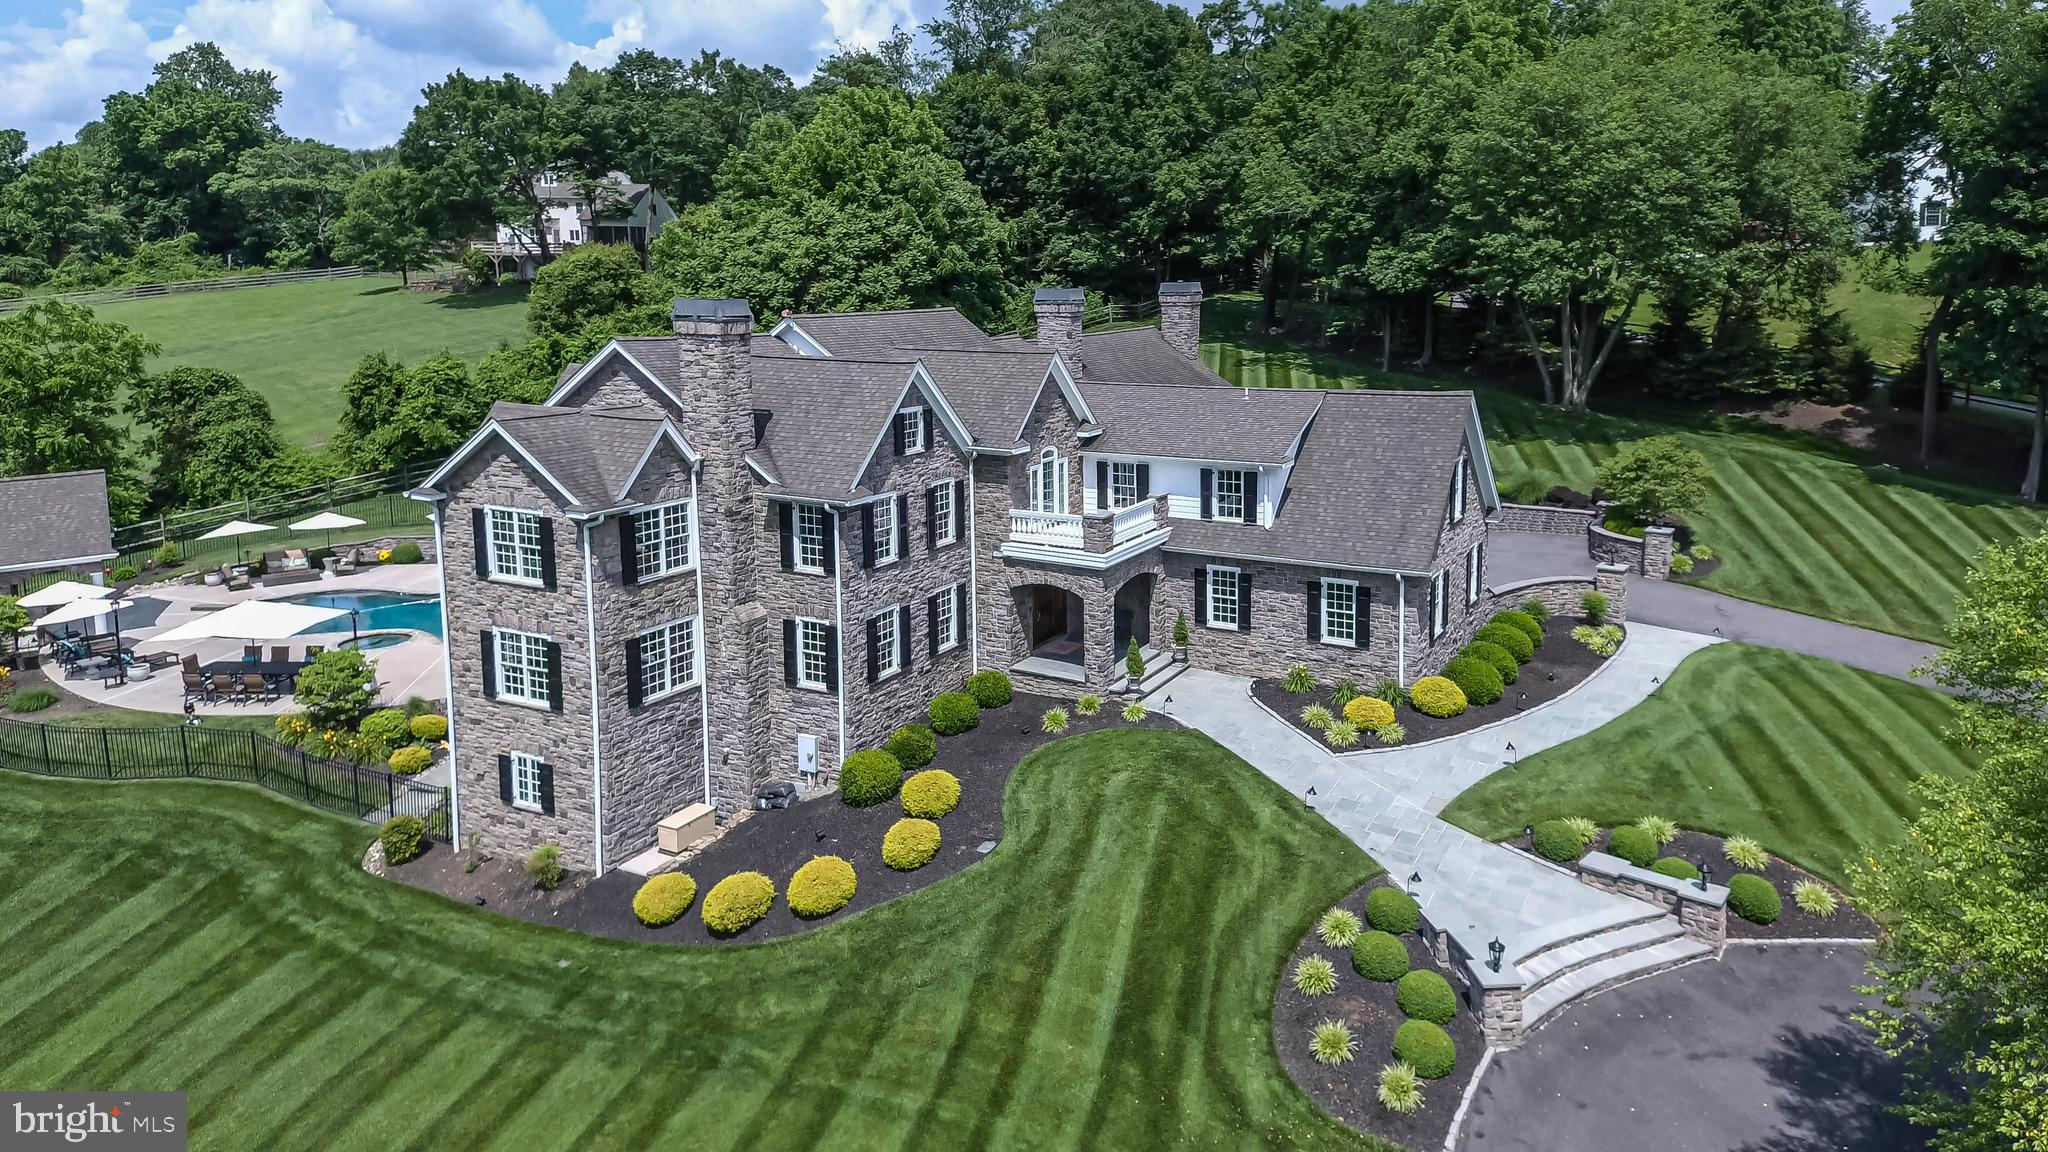 108 Pennfield Drive, Kennett Square, PA 19348